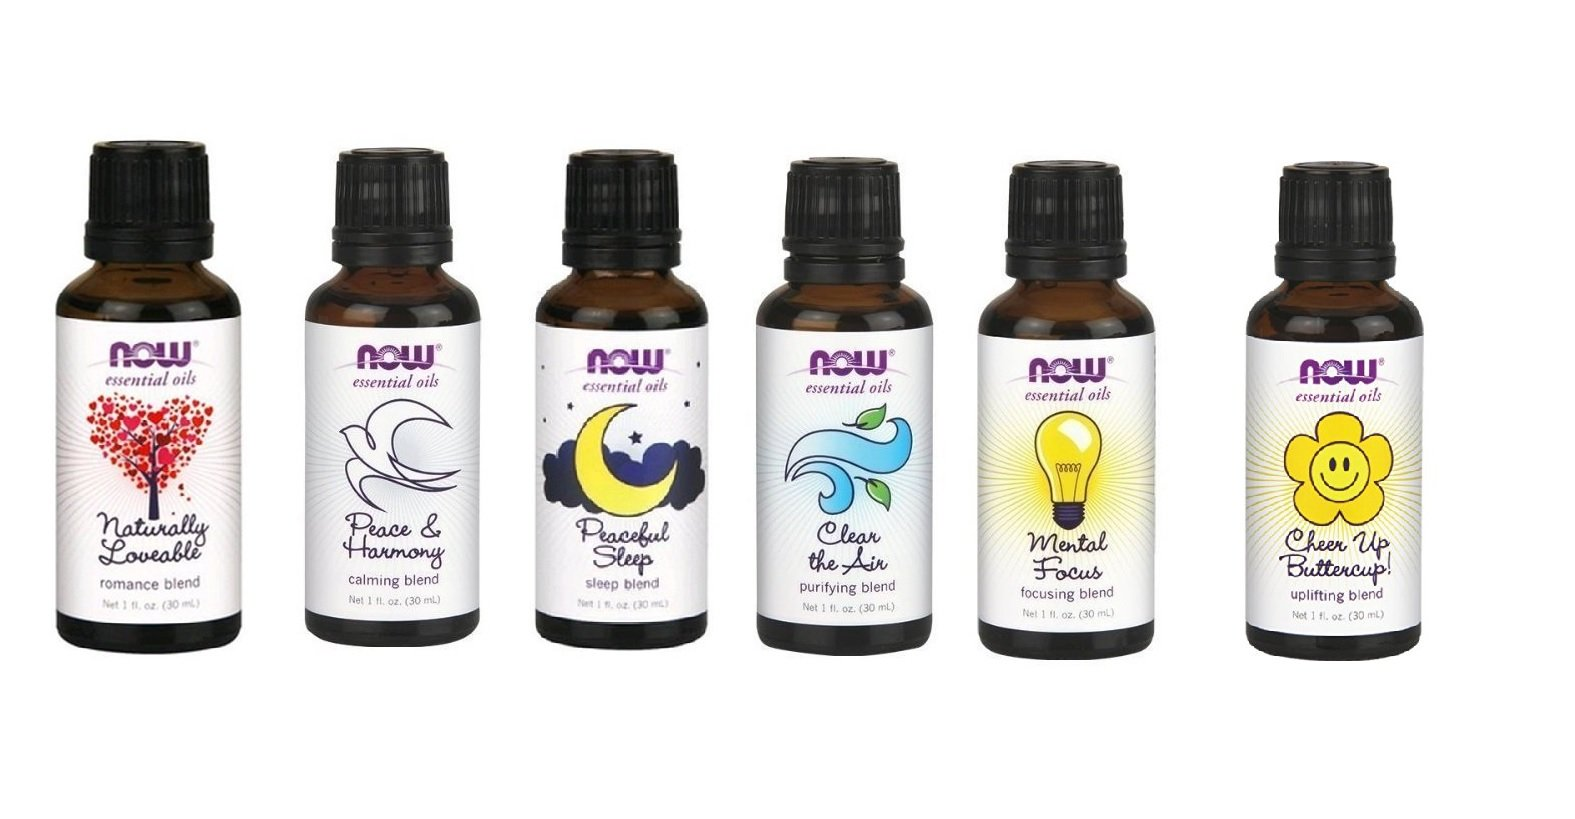 A Complete Set of Blend Oils From Now Foods (6) - Romance, Peace, Sleep, Clear the Air, Mental Focus and Cheer up Buttercup by NOW Foods